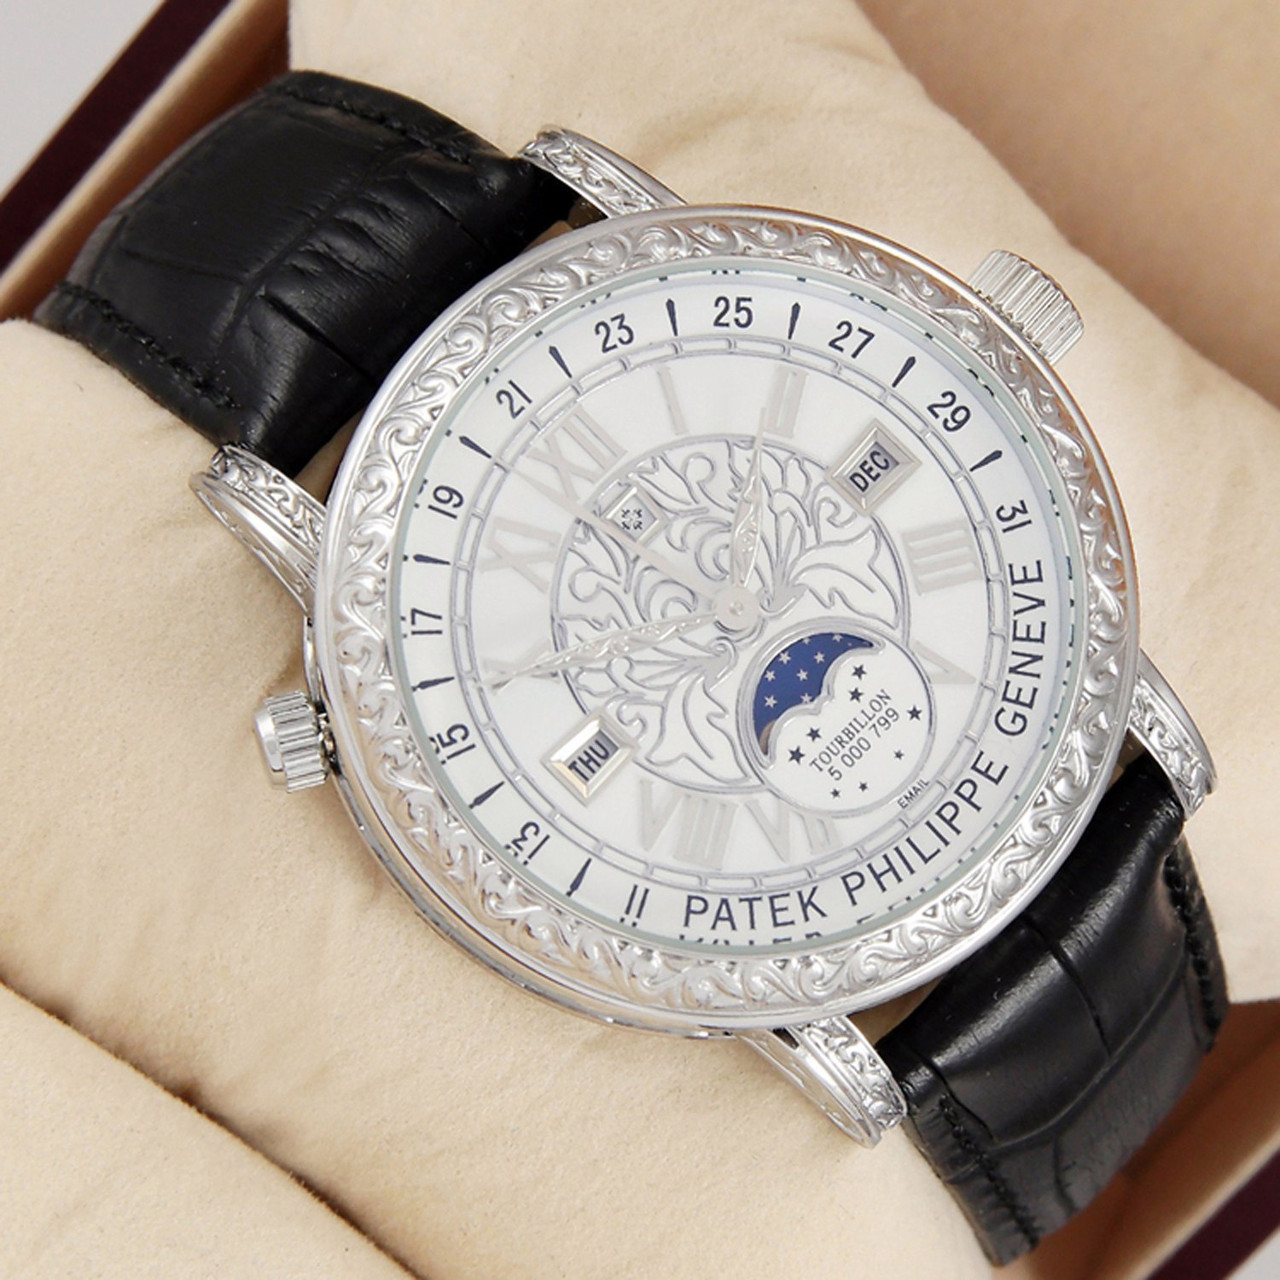 Мужские кварцевые наручные часы Patek Philippe Grand Complications Sky Moon  Tourbillon silver white - Интернет- ec19e99a8ae